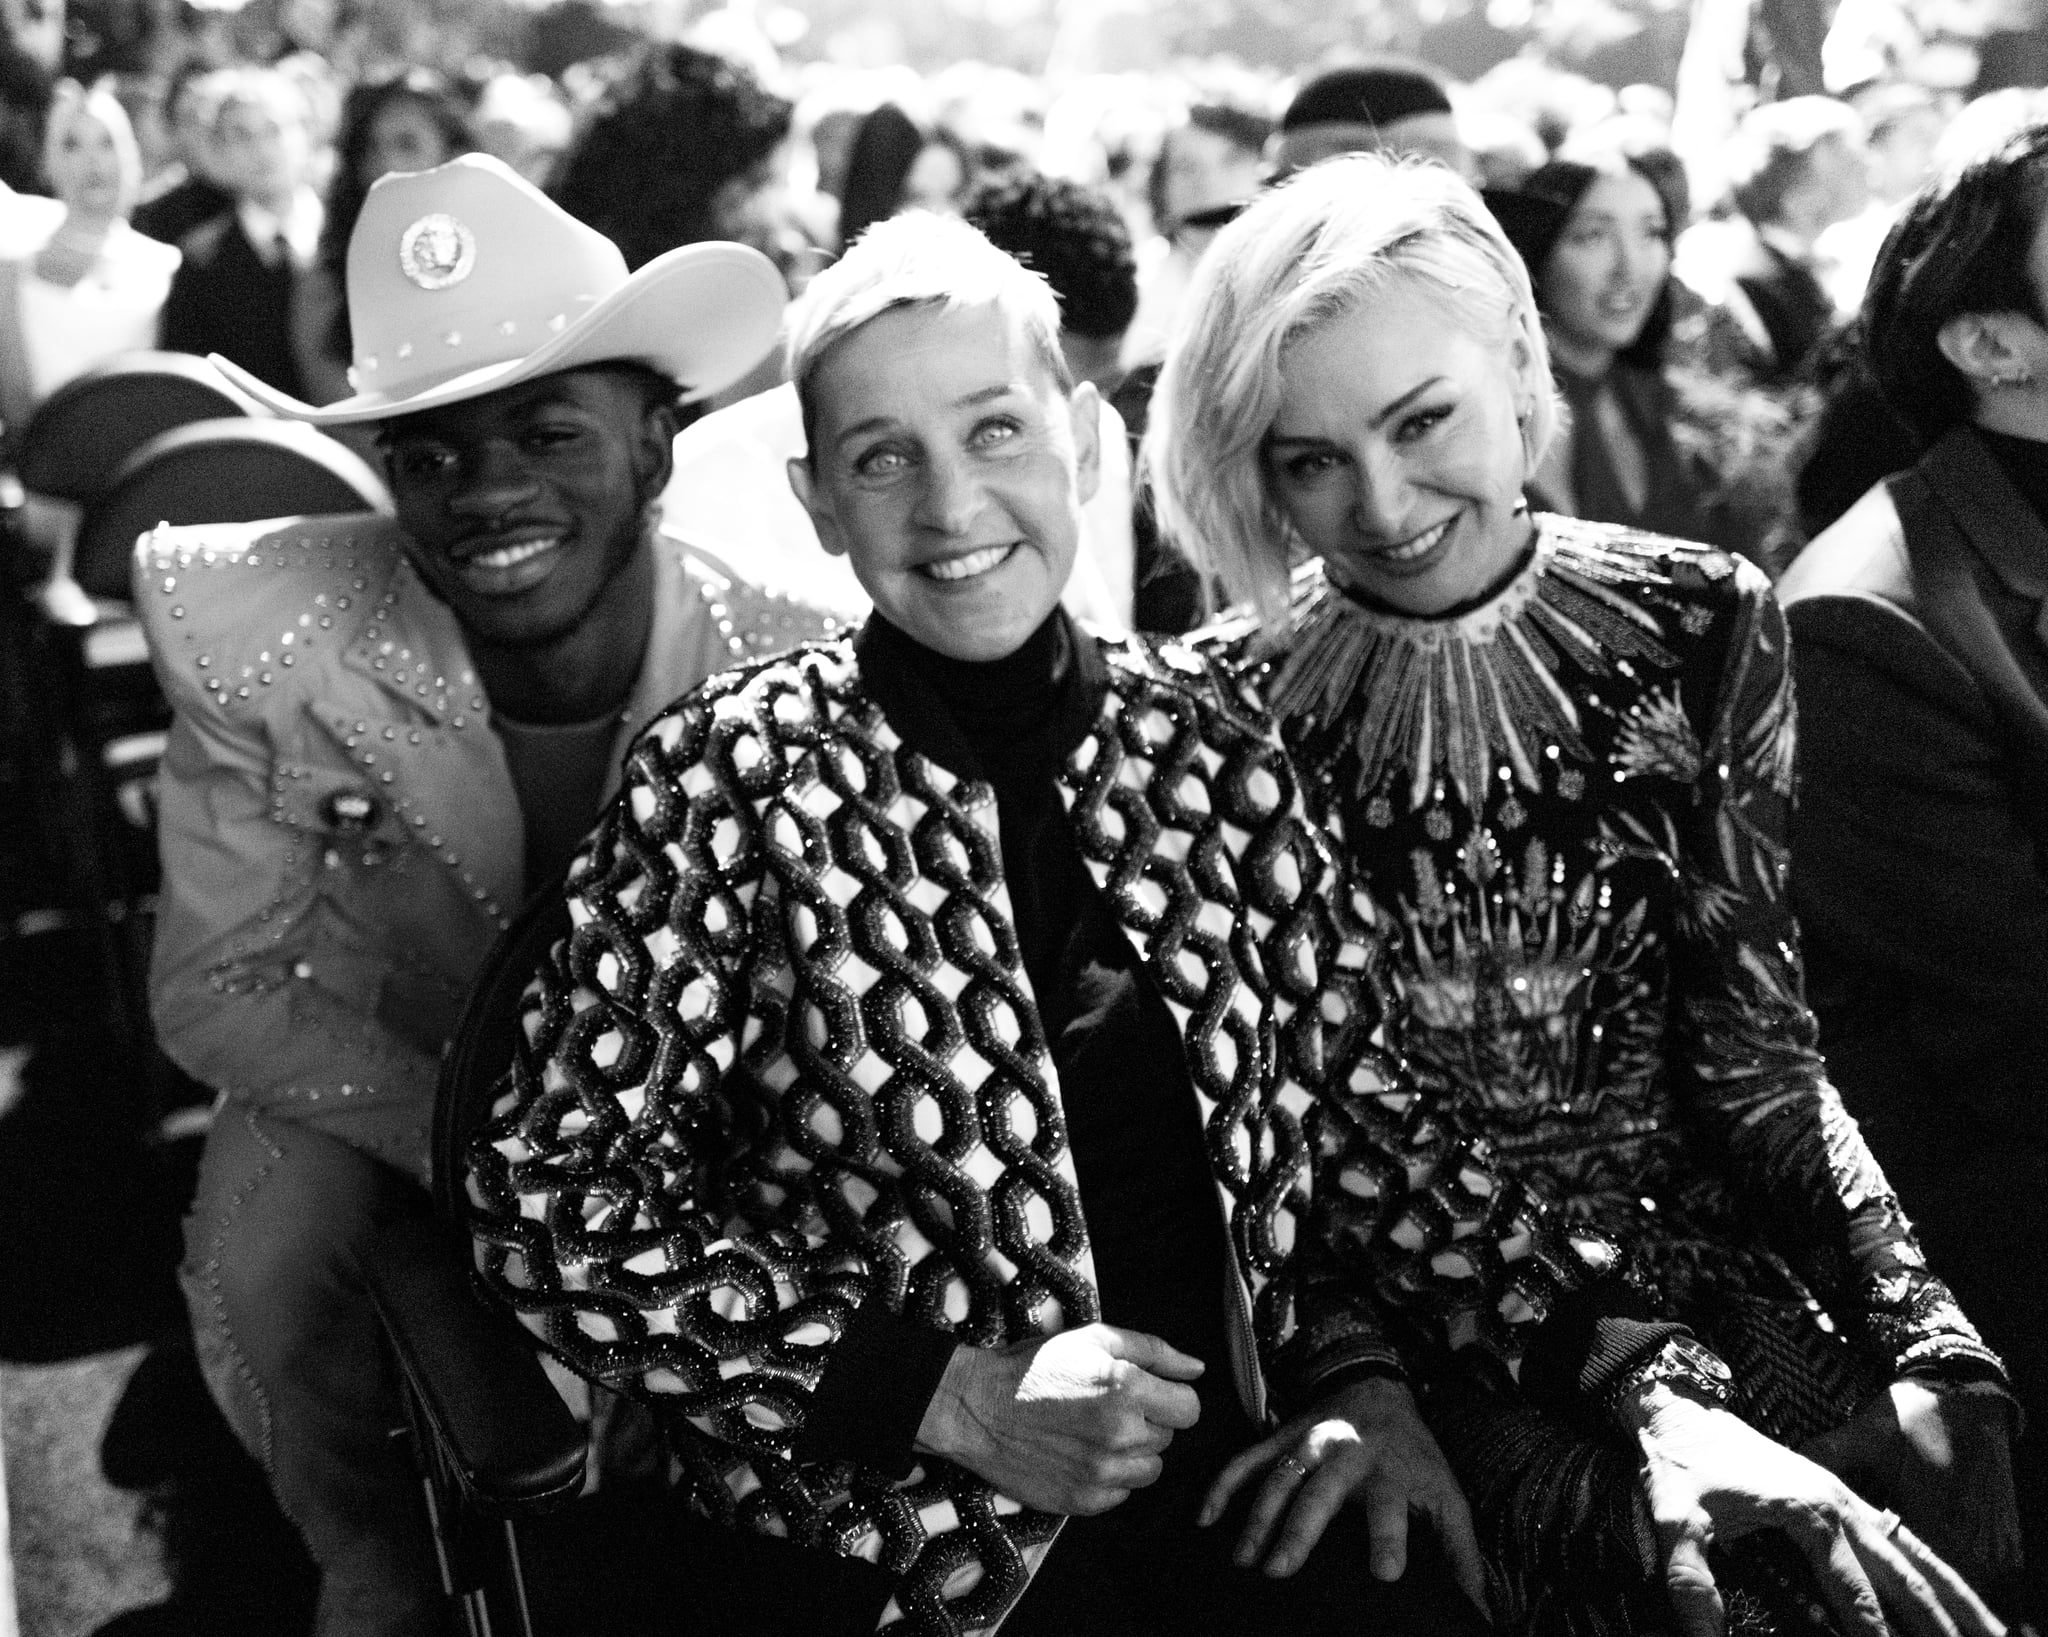 LOS ANGELES, CALIFORNIA - JANUARY 26:(EDITOR'S NOTE: This image has been converted to black and white. Colour version available.) (L-R) Lil Nas X, Ellen DeGeneres, and Portia de Rossi attend the 62nd Annual GRAMMY Awards on January 26, 2020 in Los Angeles, California. (Photo by John Shearer/Getty Images for The Recording Academy)